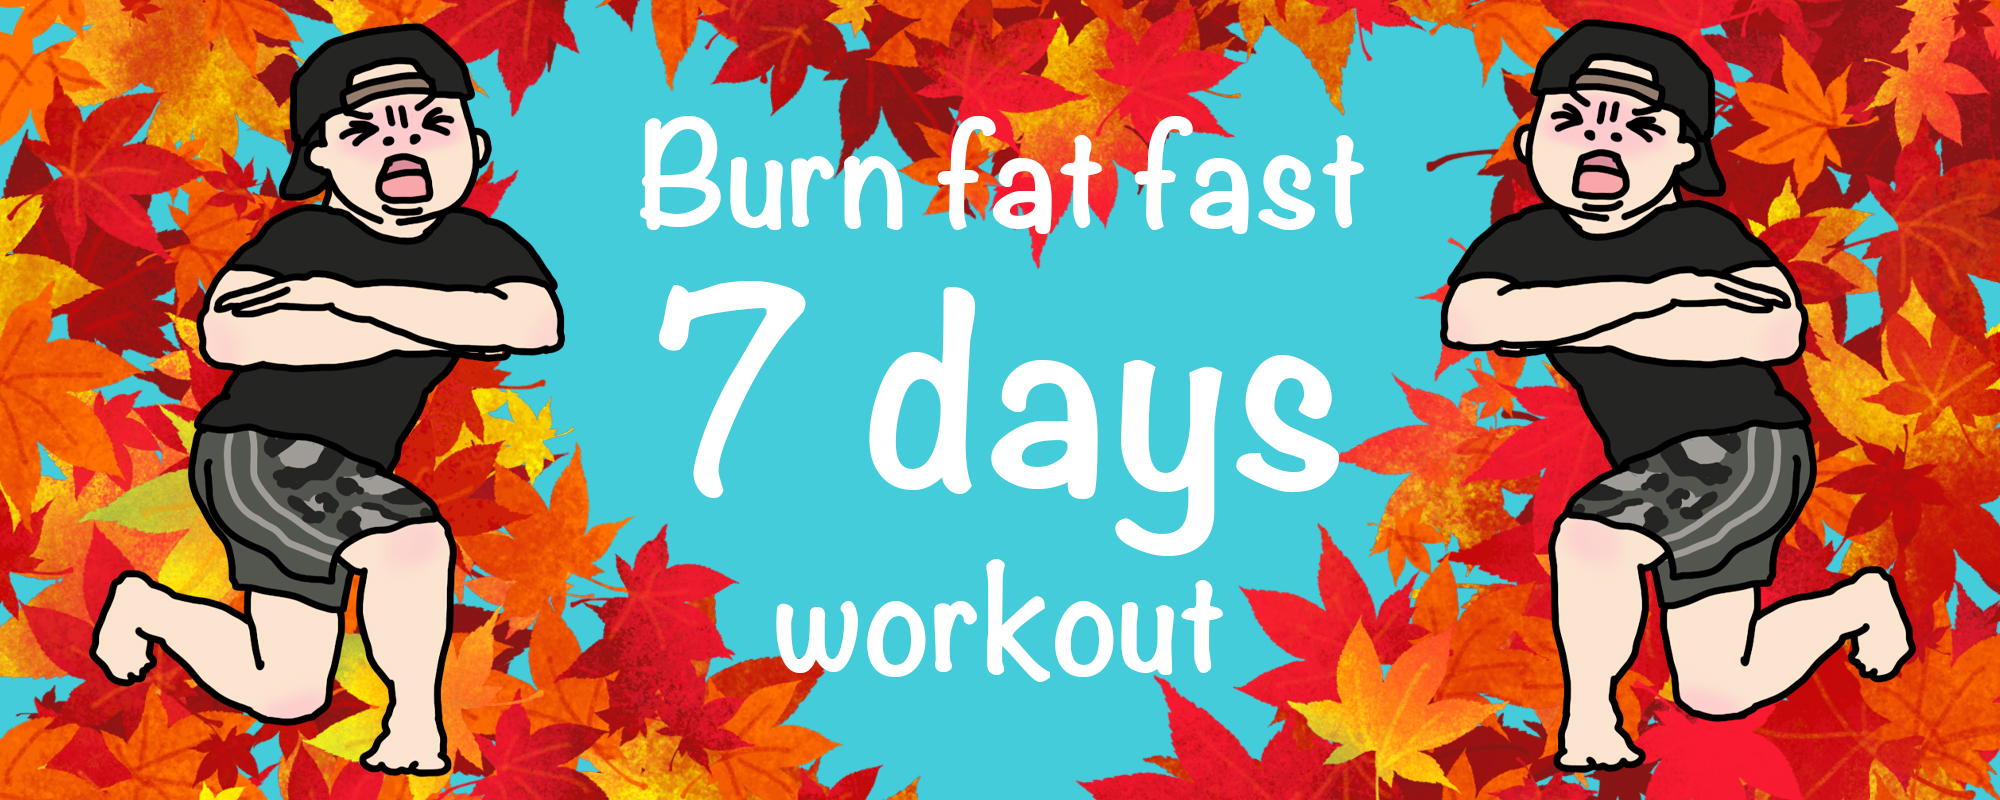 Burn fat fast in 7 days program